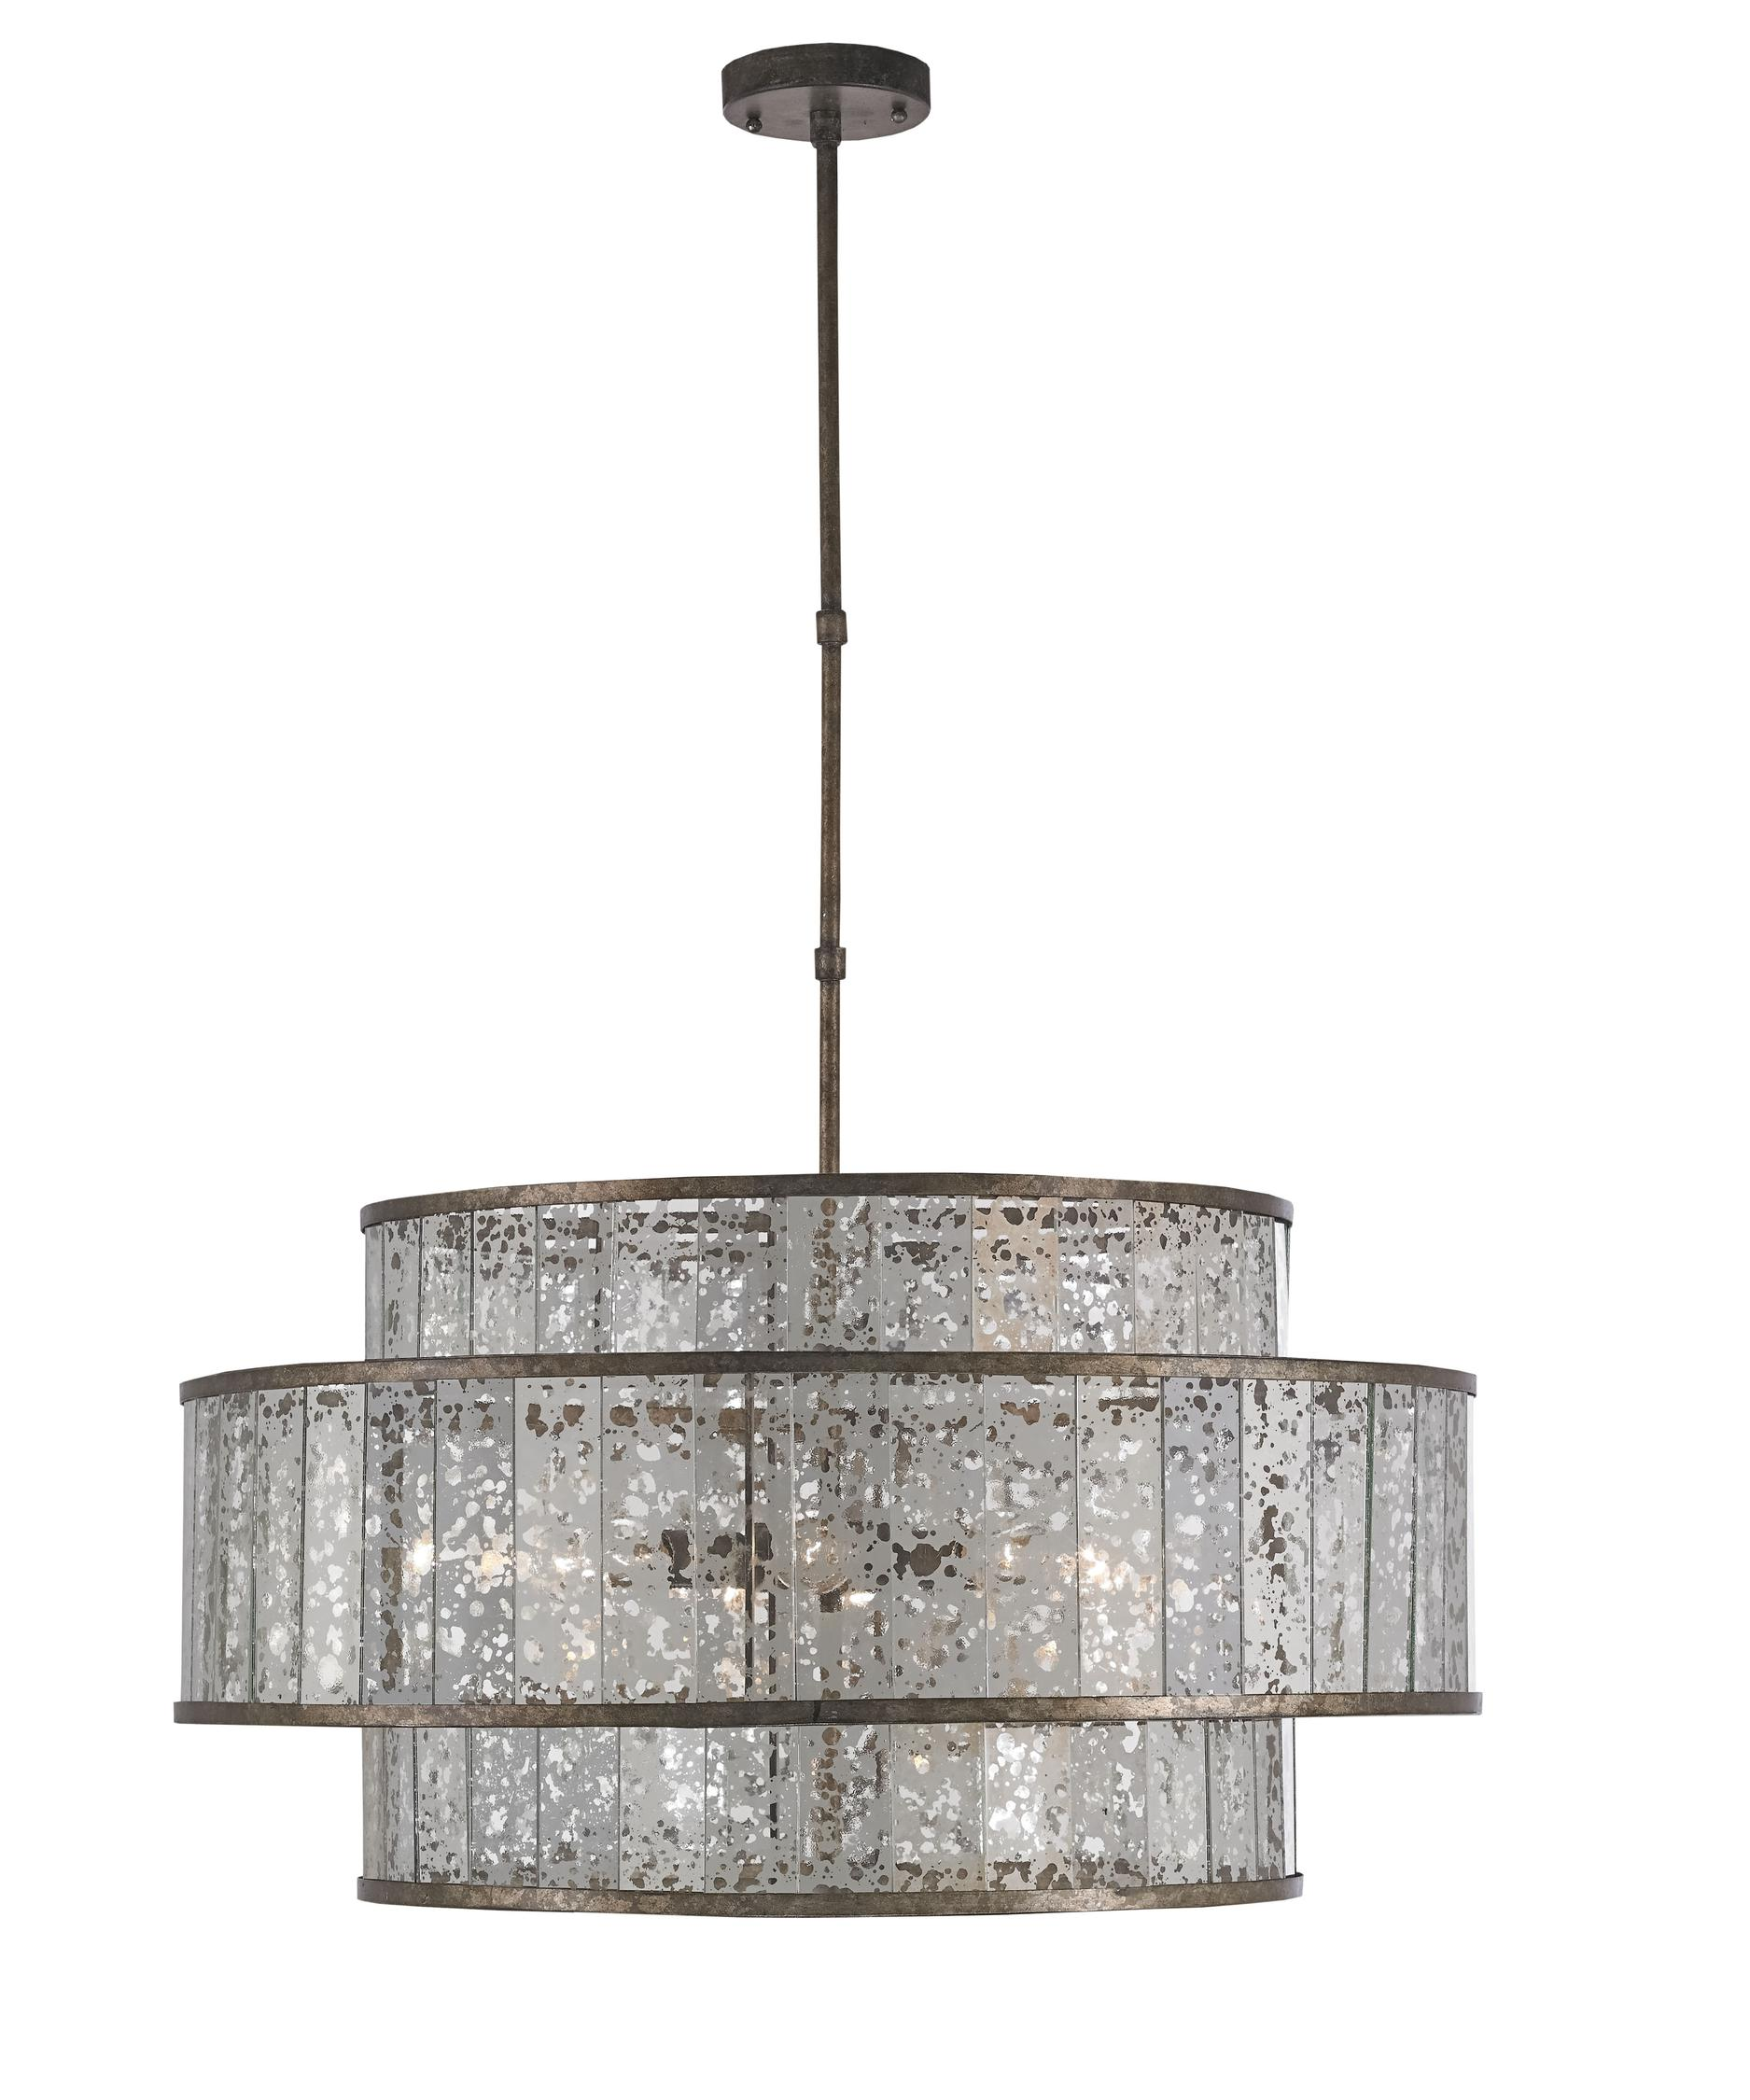 Currey and Company Fantine 30 Inch Wide 8 Light Large Pendant | Capitol  Lighting 1-800lighting.com